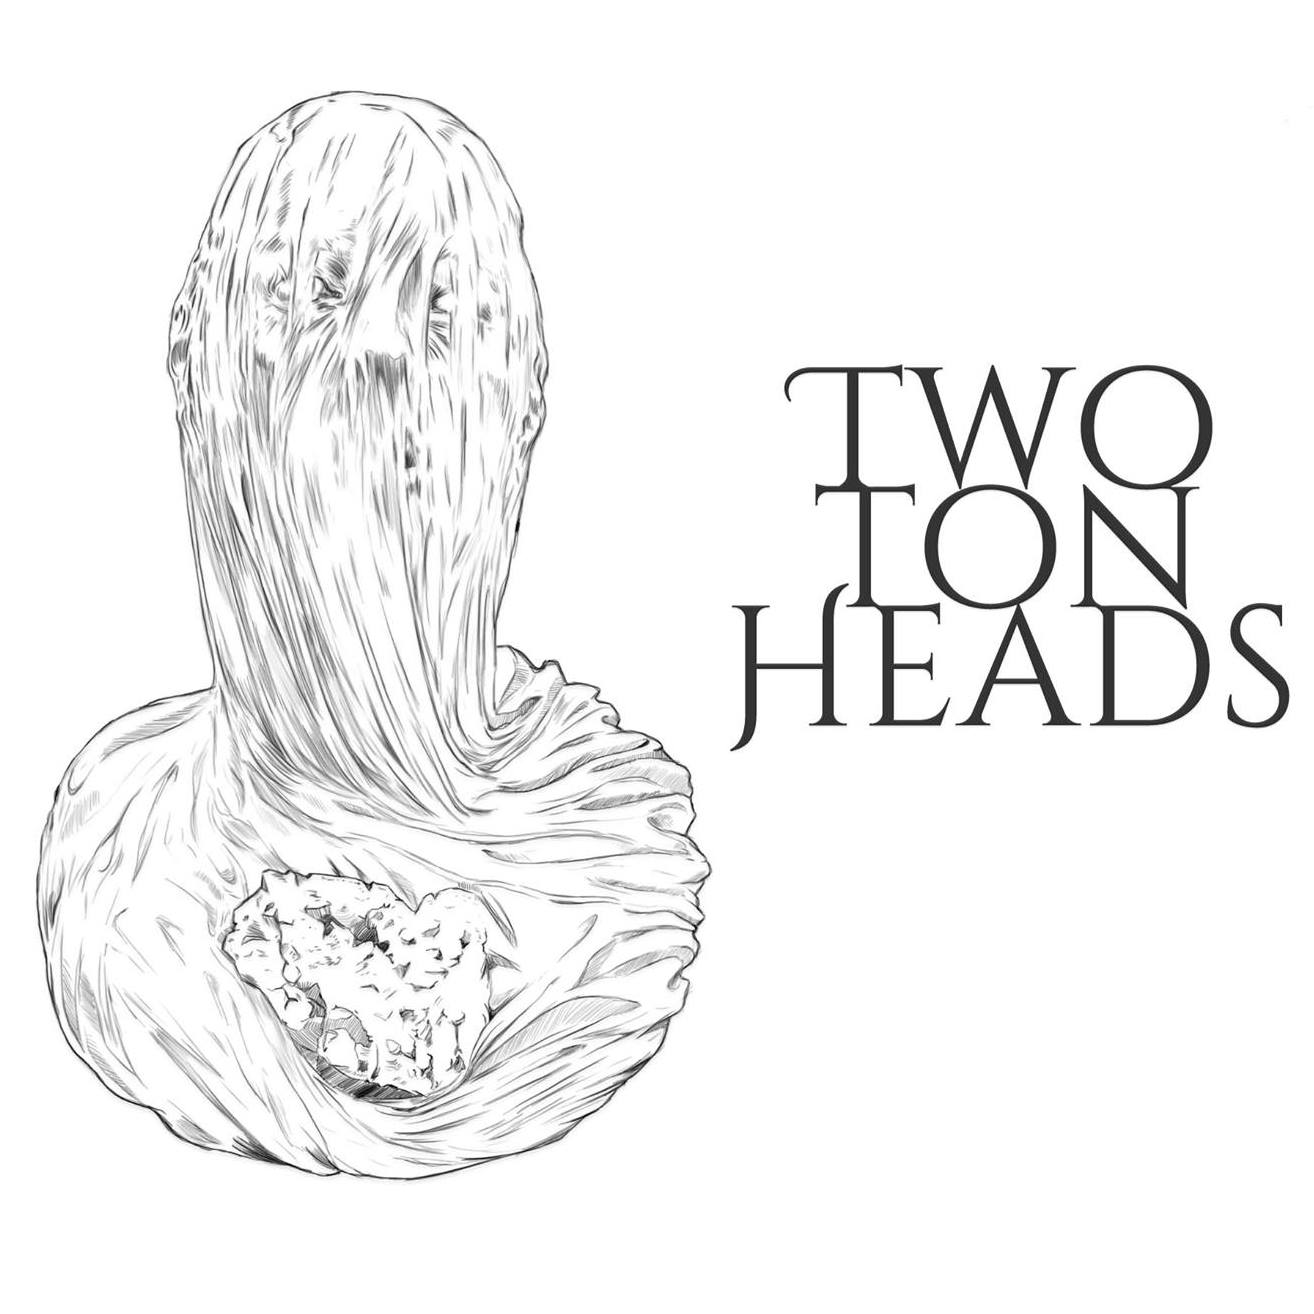 TWO TON HEADS * BRANDON VON VACIK * ARMADILLO * RECALL * JUDAH MICHAEL